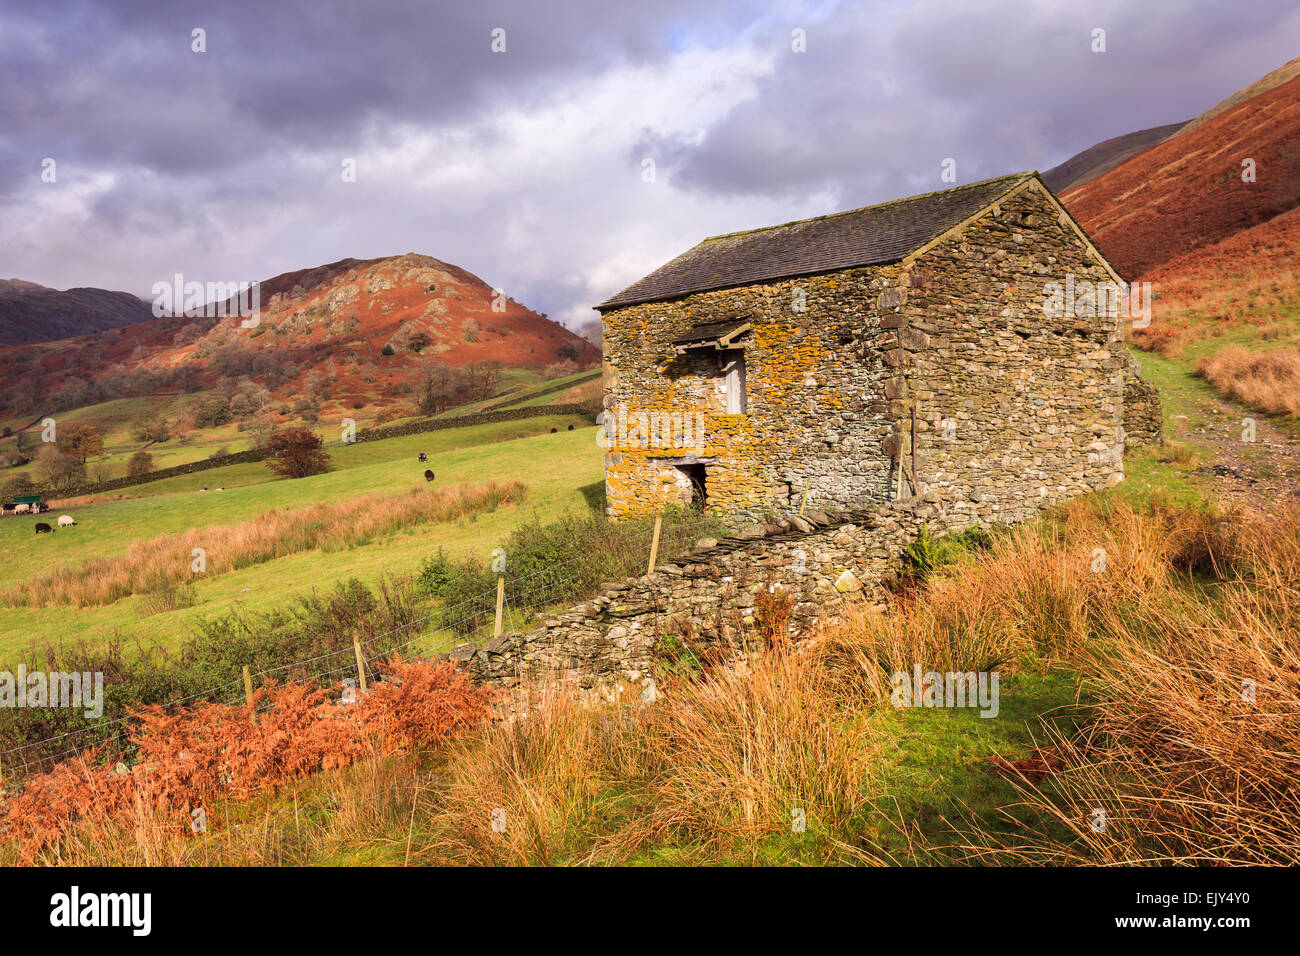 A barn in the Troutbeck Valley in the Lake District National Park, captured with the Tongue in the distance. - Stock Image